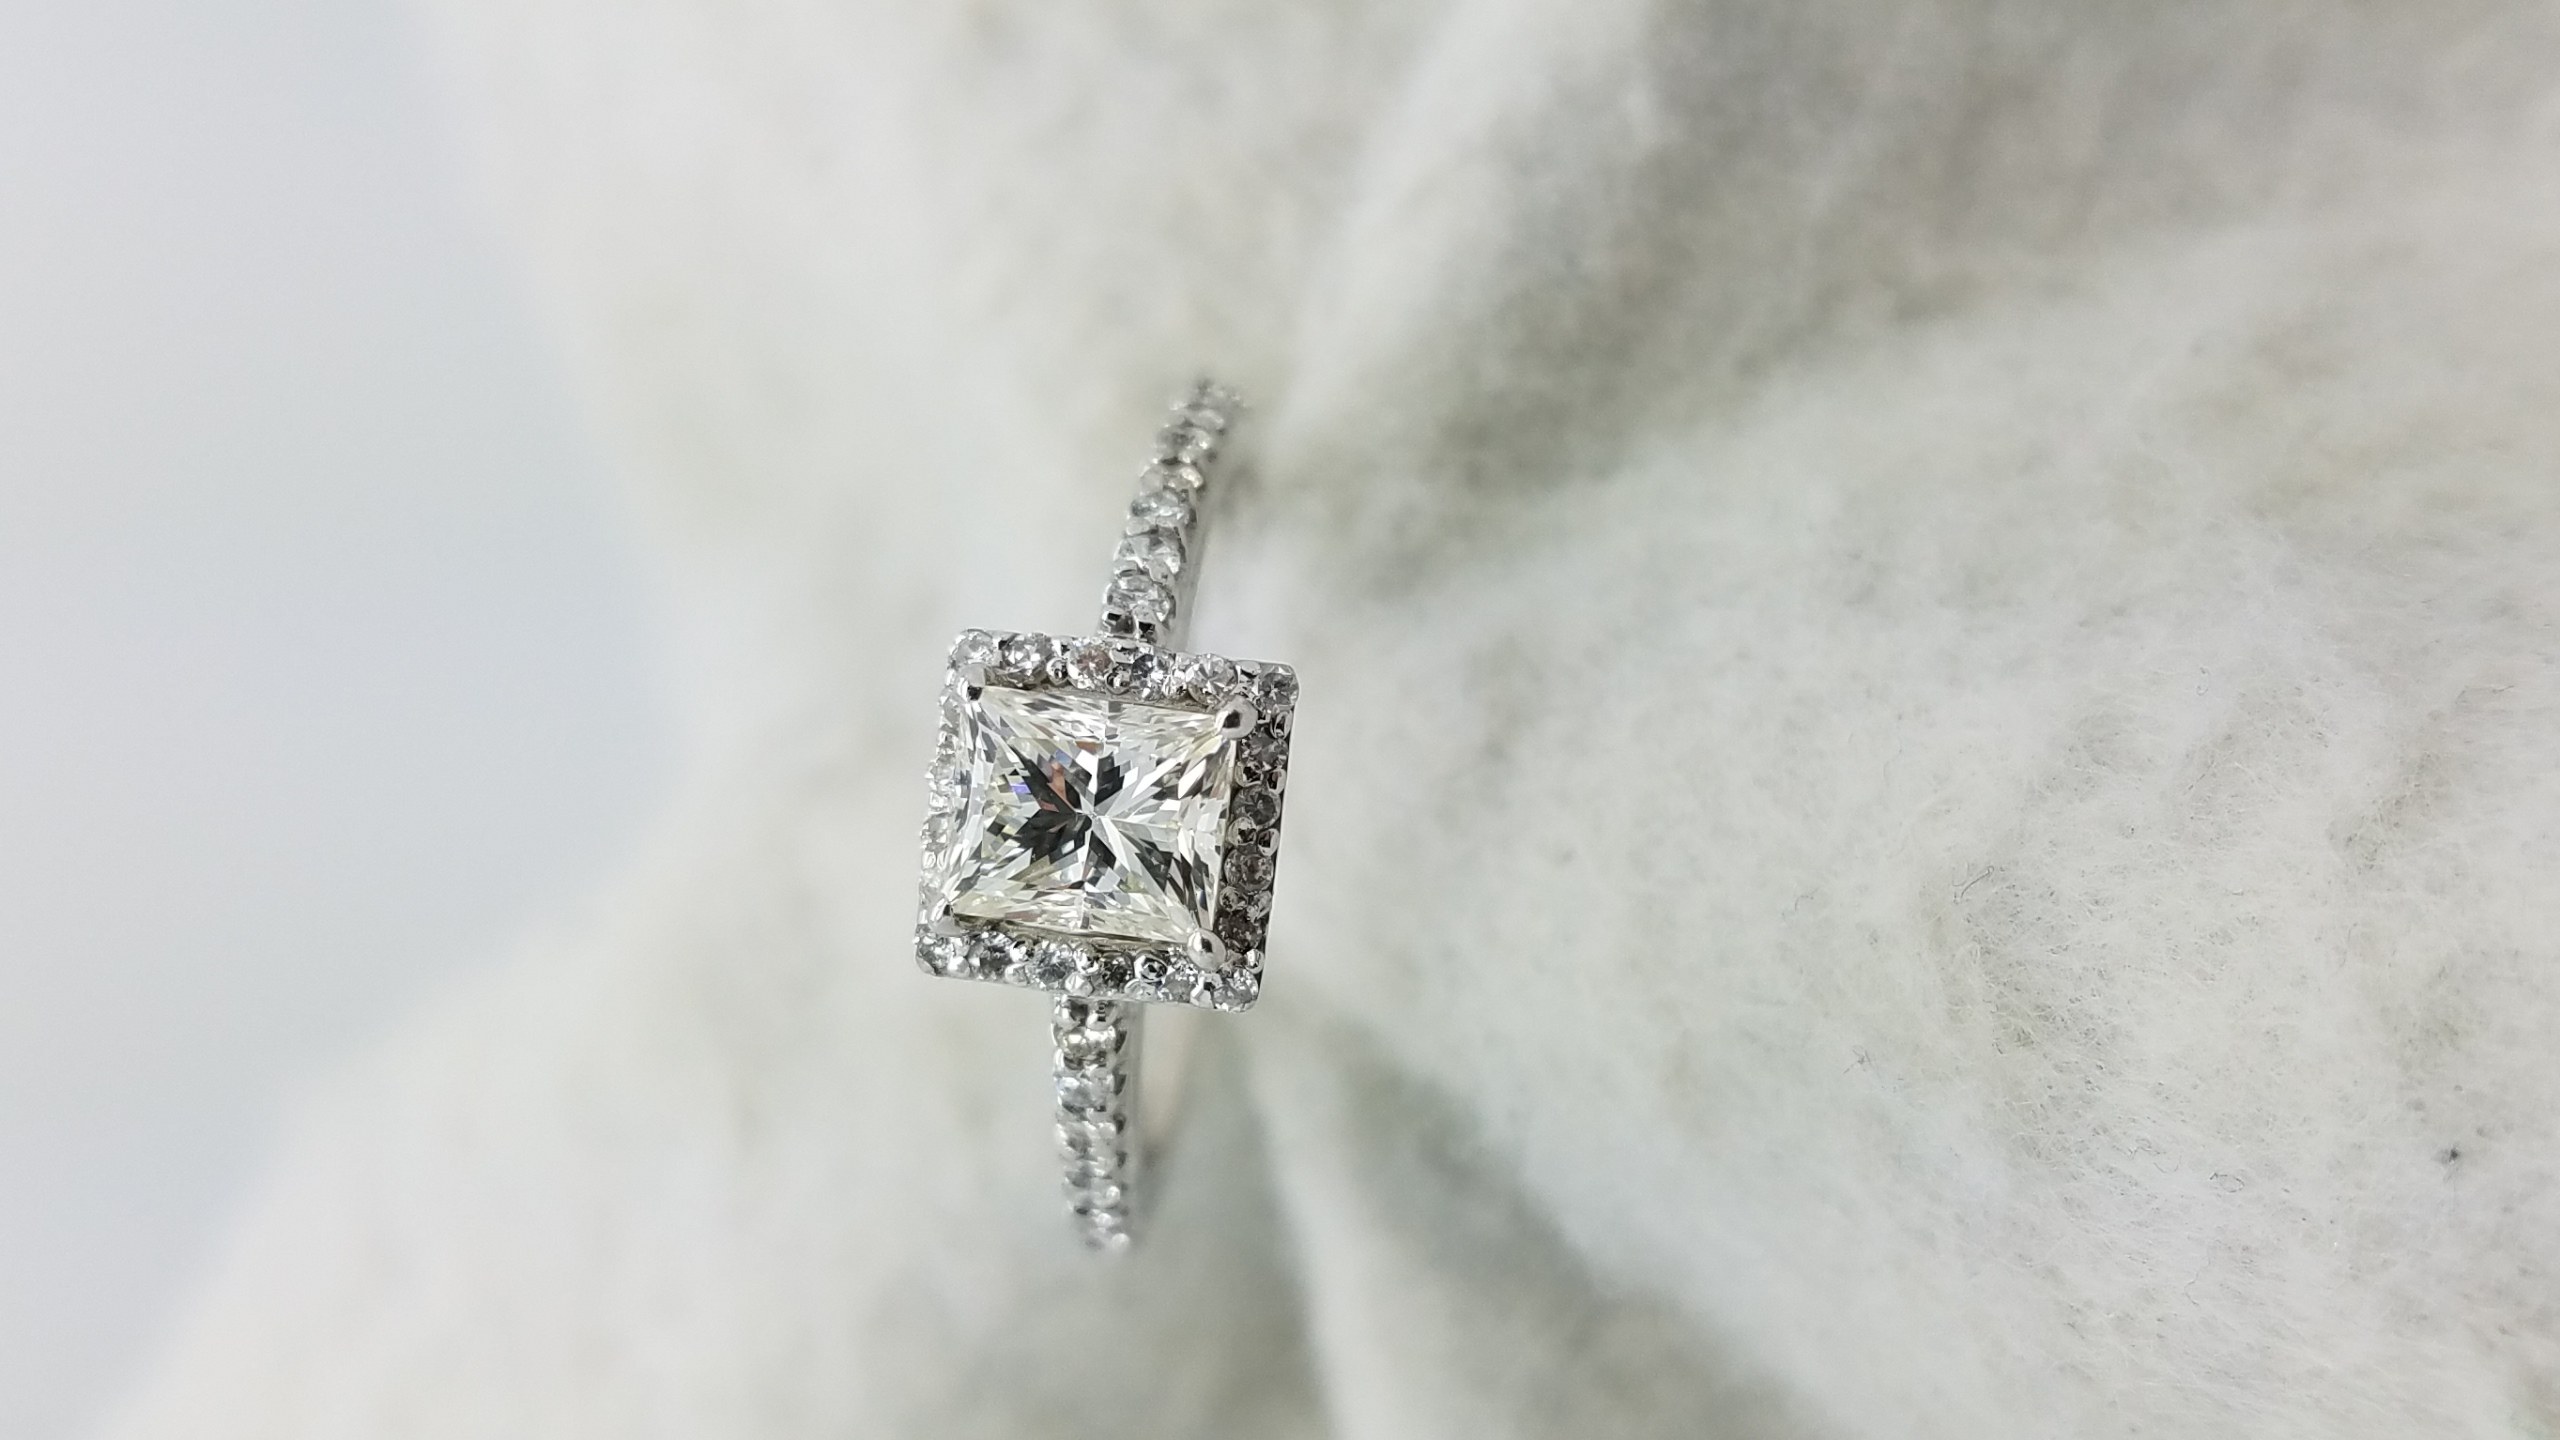 14K	White Gold	Halo	.89,.48	ct.	PR+R	Cut	Diamond	K-VVS2		4-prong	Solitaire with Accents	Engagement-Ring